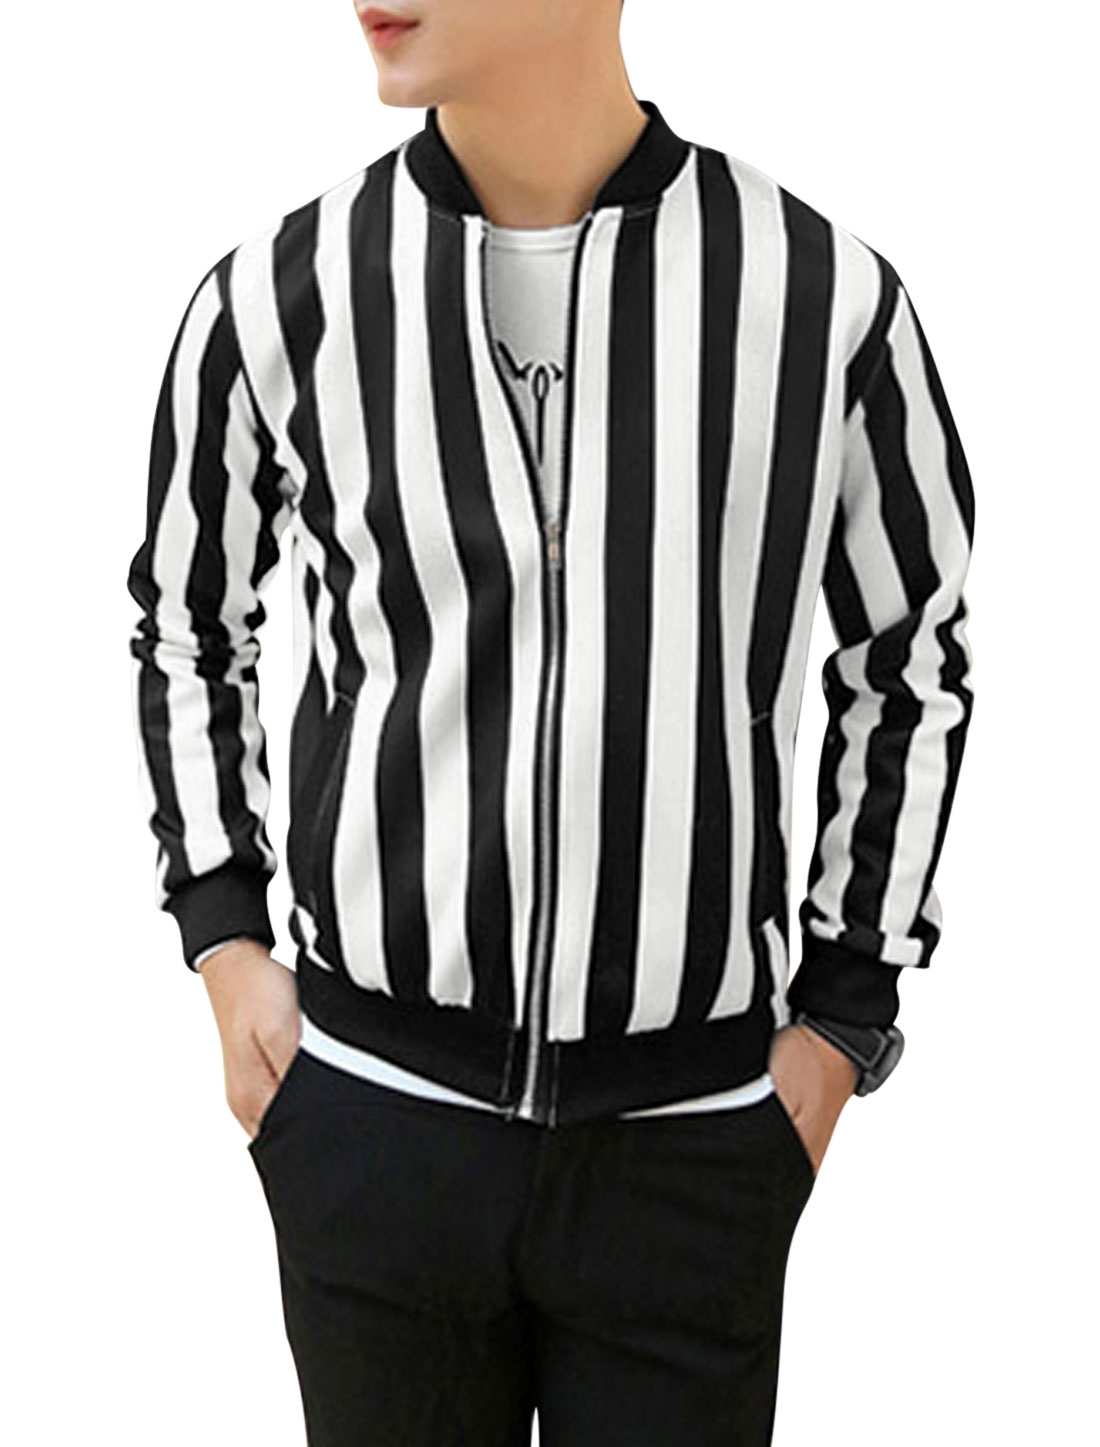 Man White Black Stand Collar Long Sleeves Zippered Front Stripes Jacket M